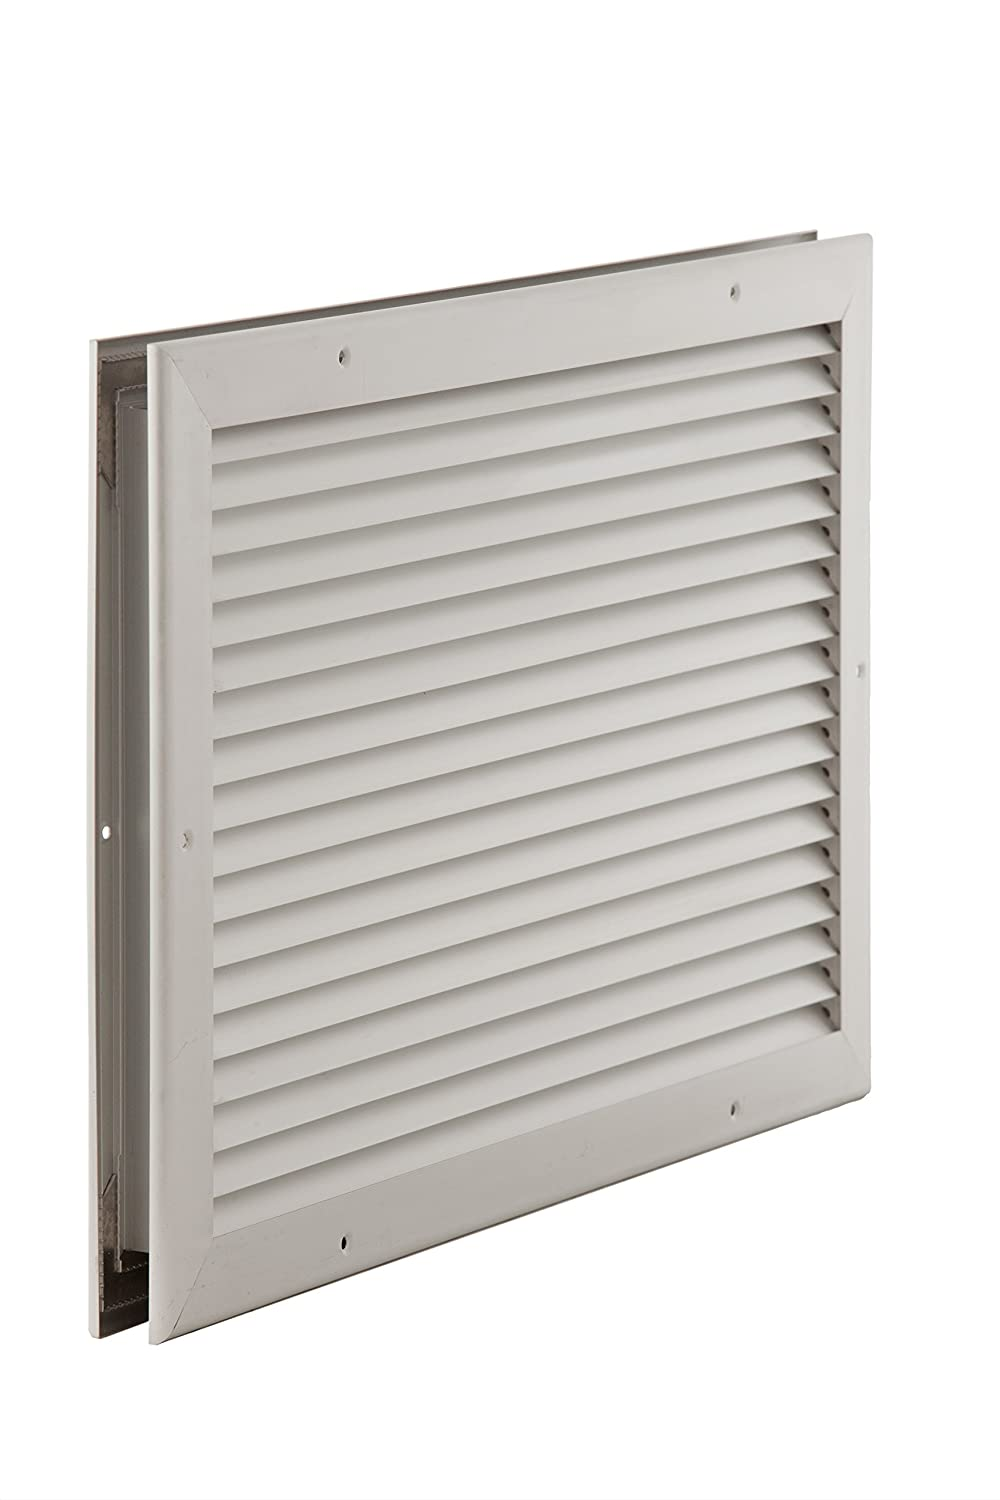 ACP 24 x 12 24 x 12 Air Conditioning Products Co. ADL 24x12 Aluminum Door Louver Air Conditioning Products ACP